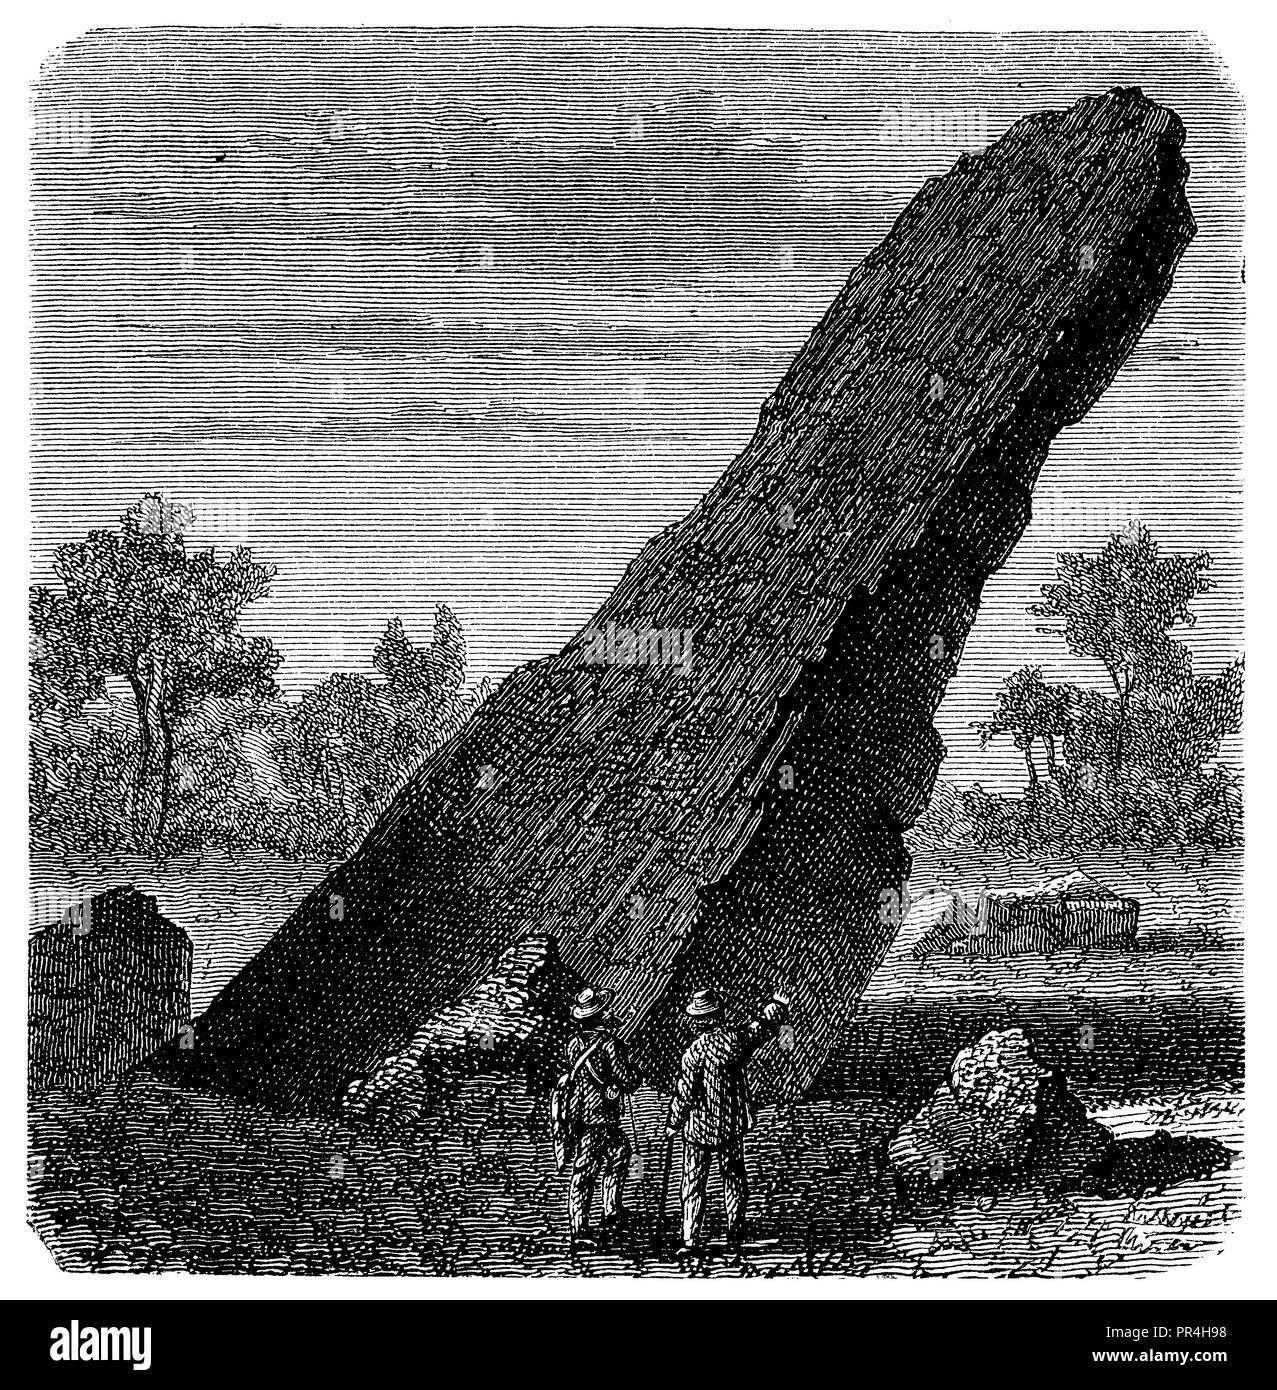 In front of the Teufelsstein. Erratic block of Jurassic limestone on slate (Pyrenees). Original drawing by E. Collomb,   1874 - Stock Image